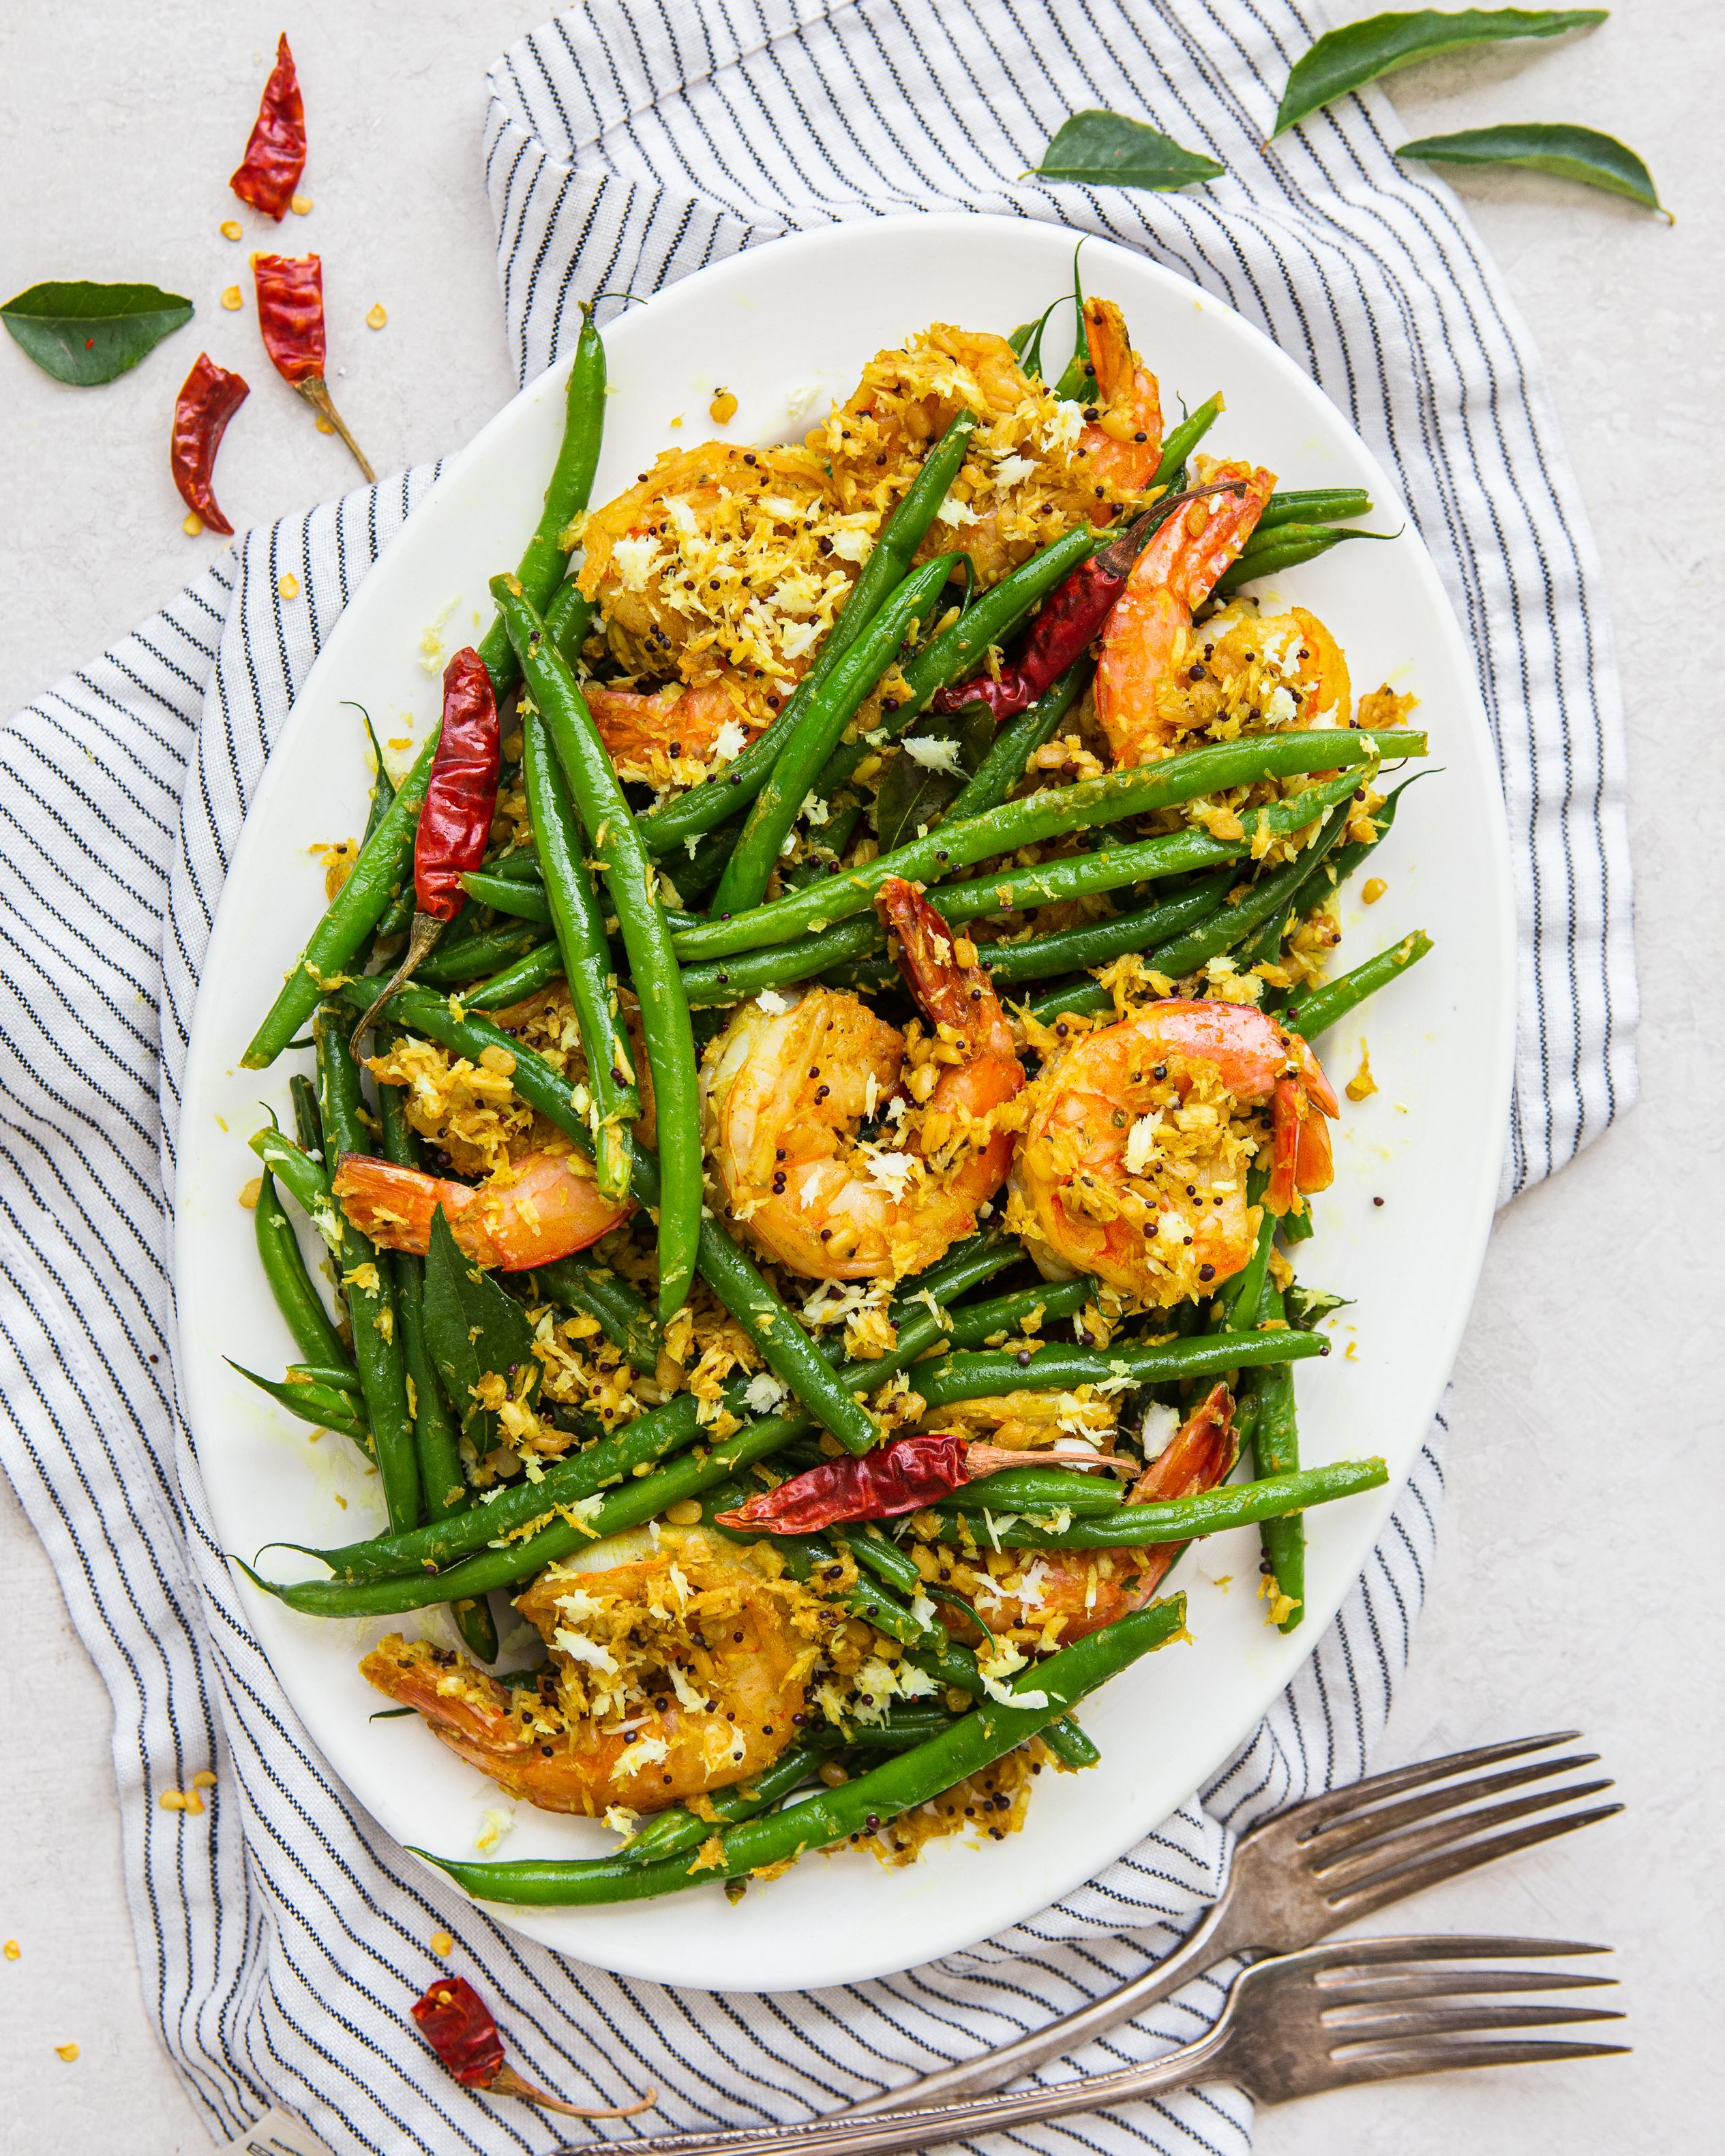 Sauteed Green Beans with Shredded Coconut, Tamarind and Shrimp